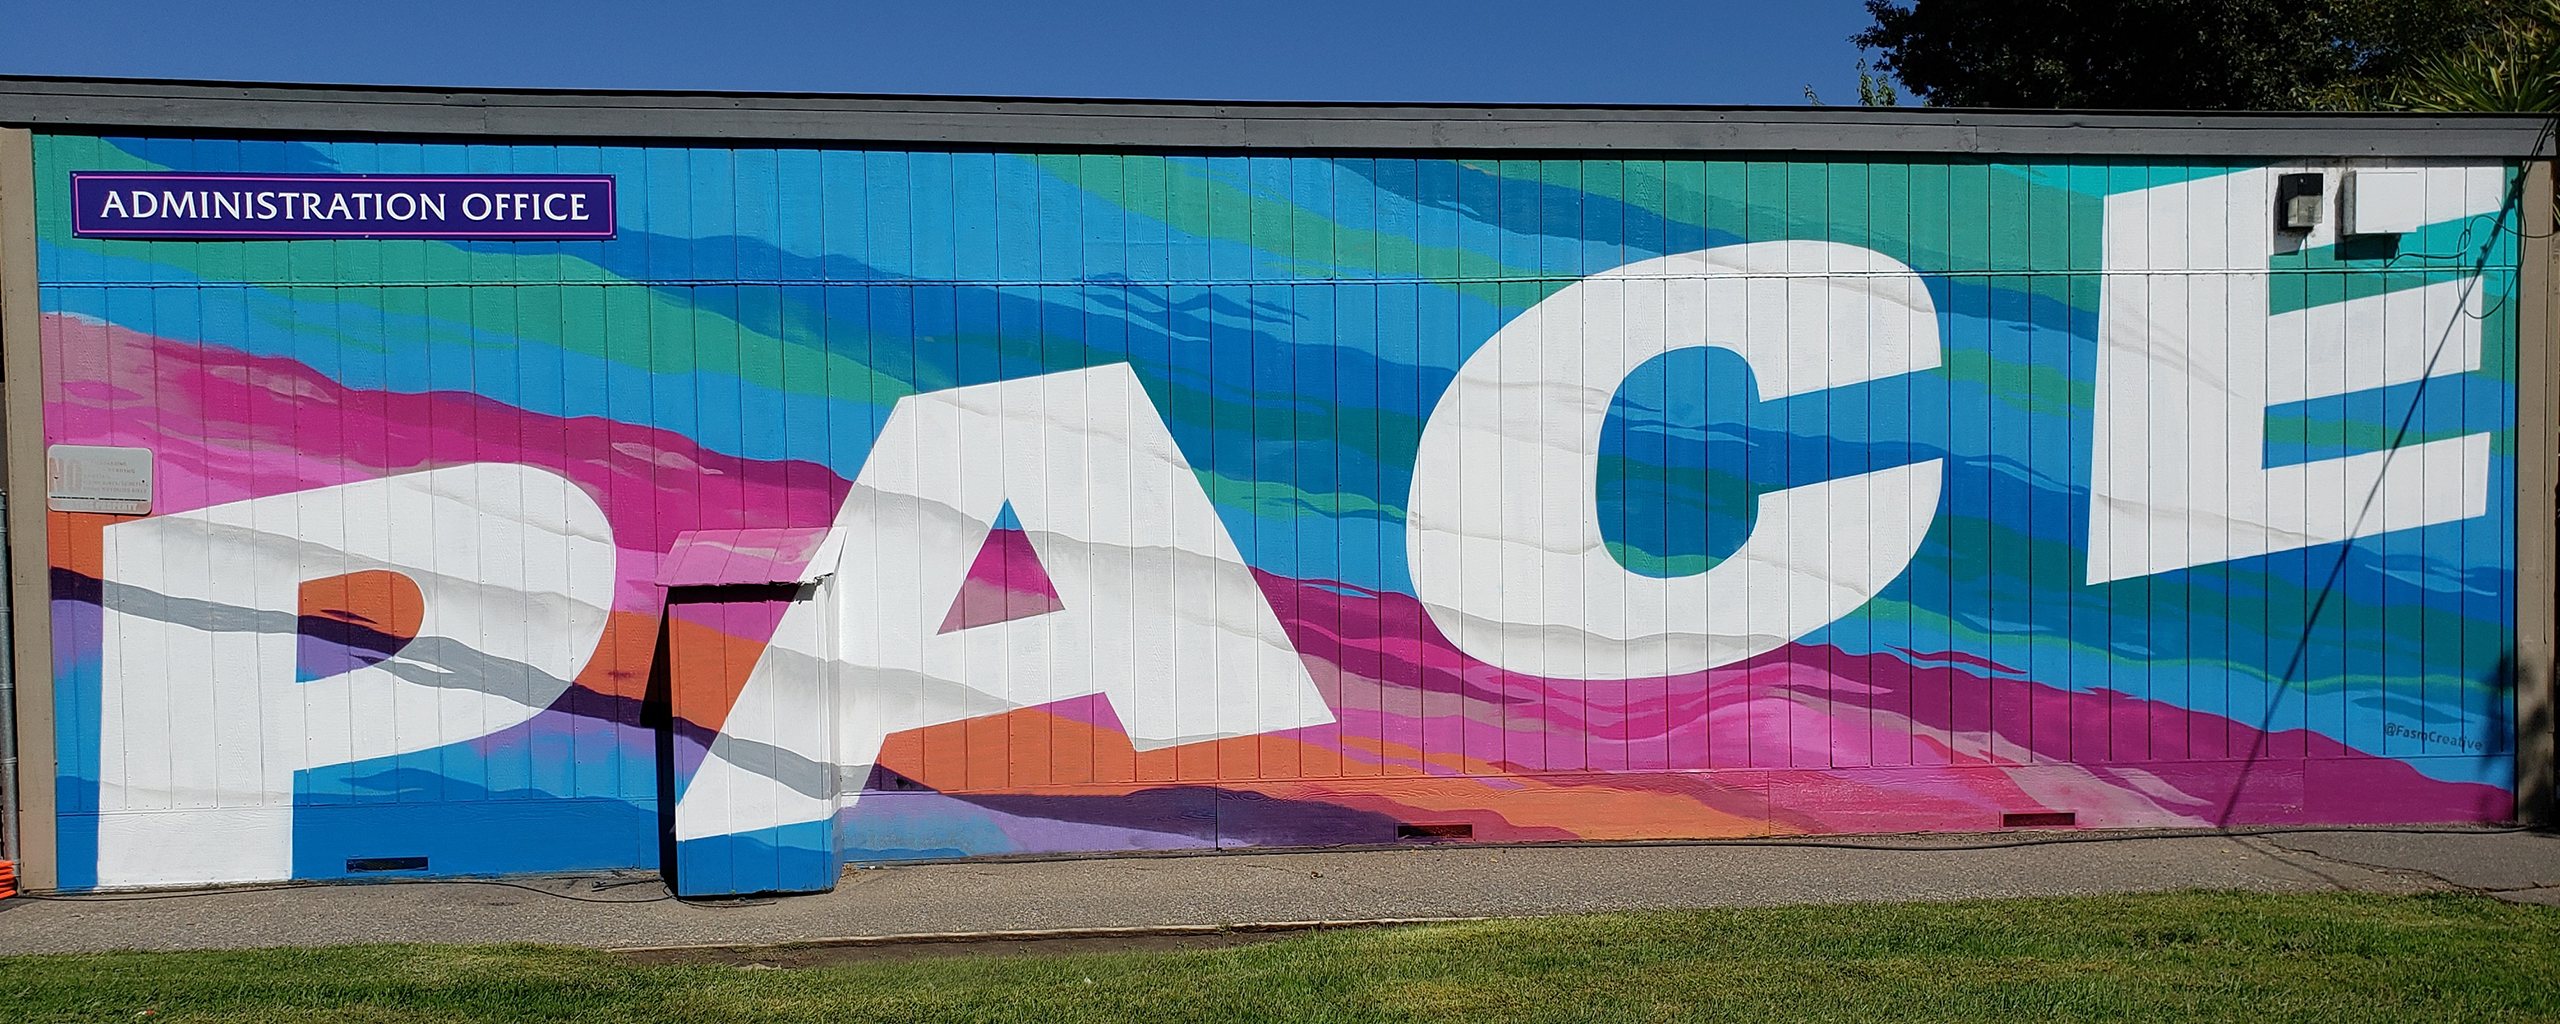 PACE mural